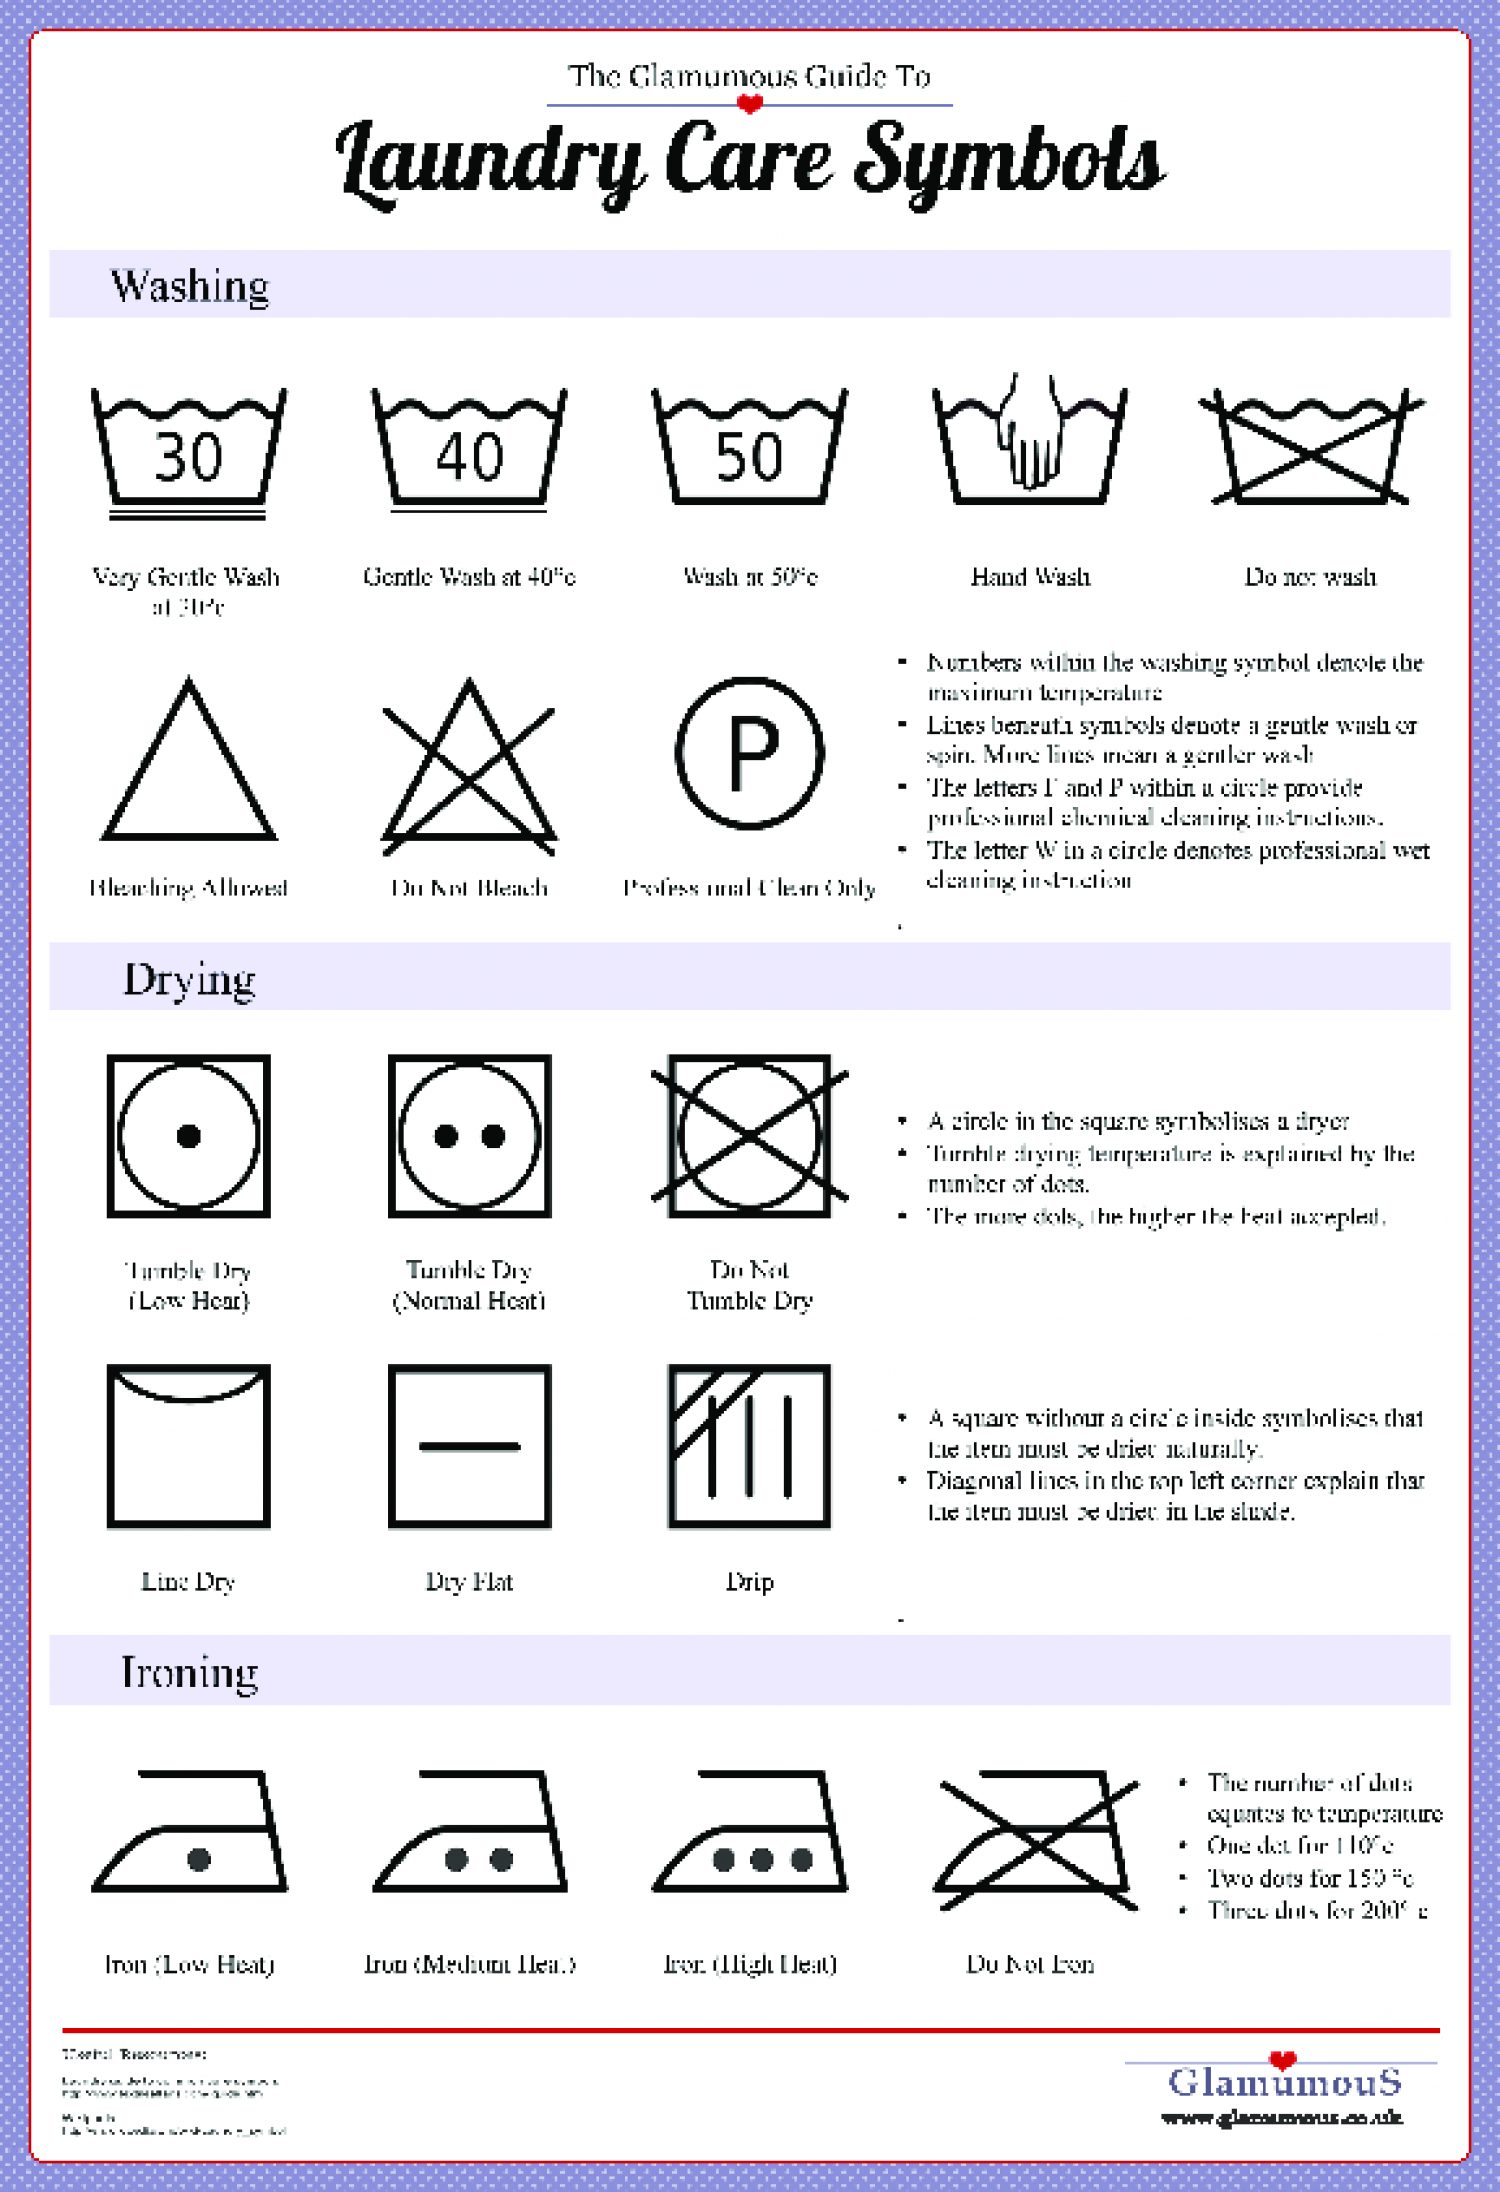 Guide to Laundry Care Symbols Infographic